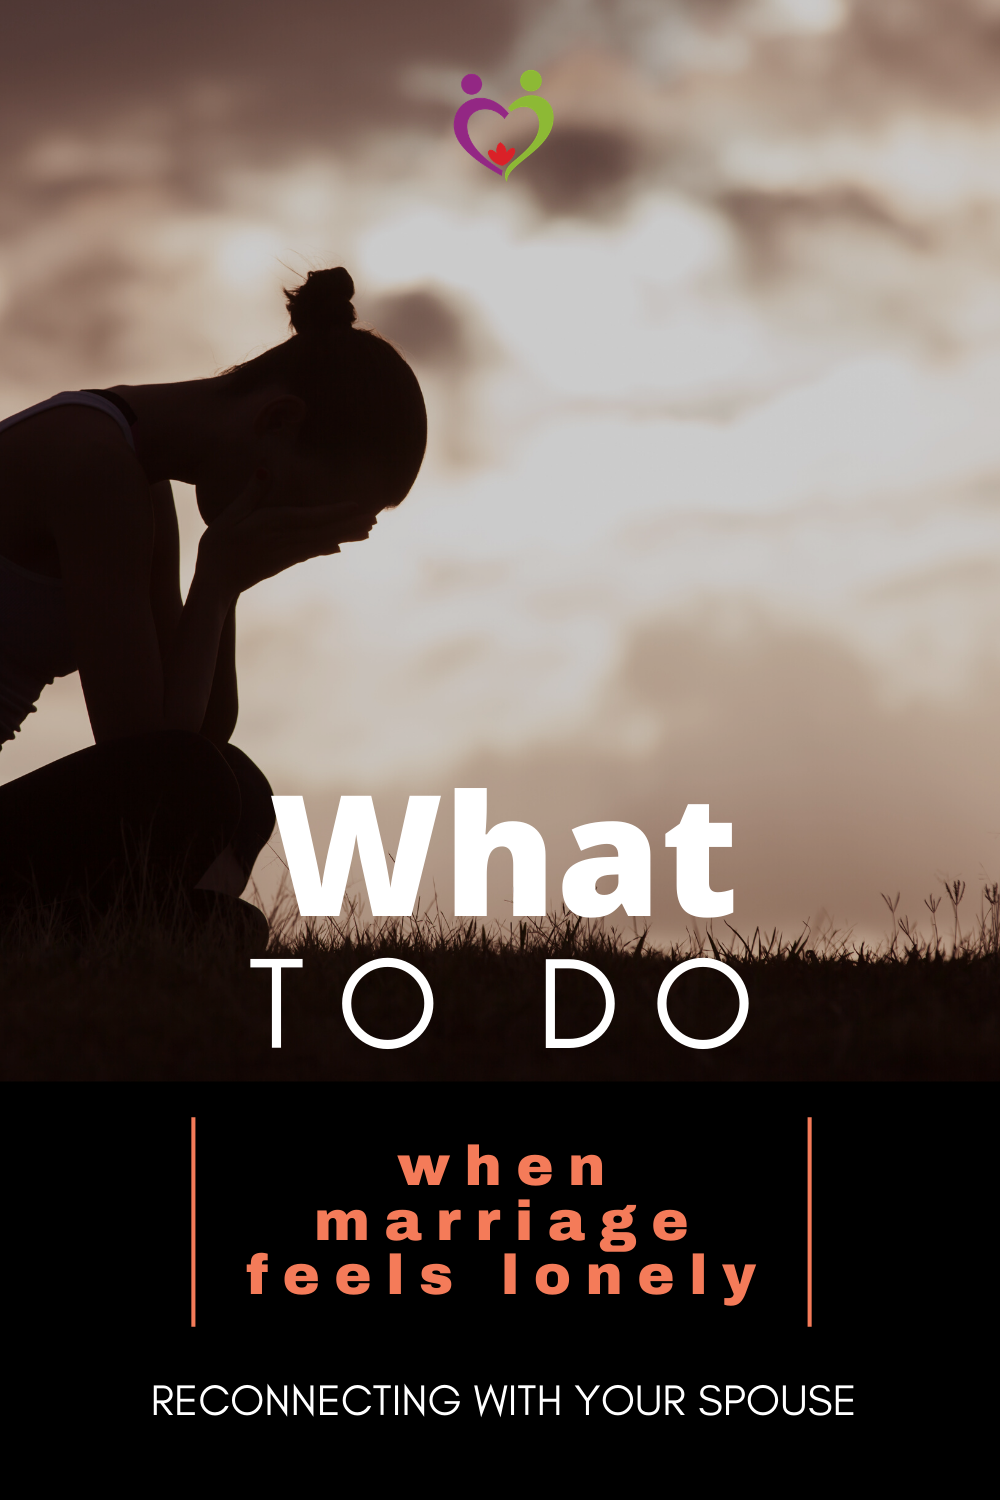 I Feel Lonely in My Marriage. What Can I Do? - WeConcile | Blog in 2020 | Feeling lonely